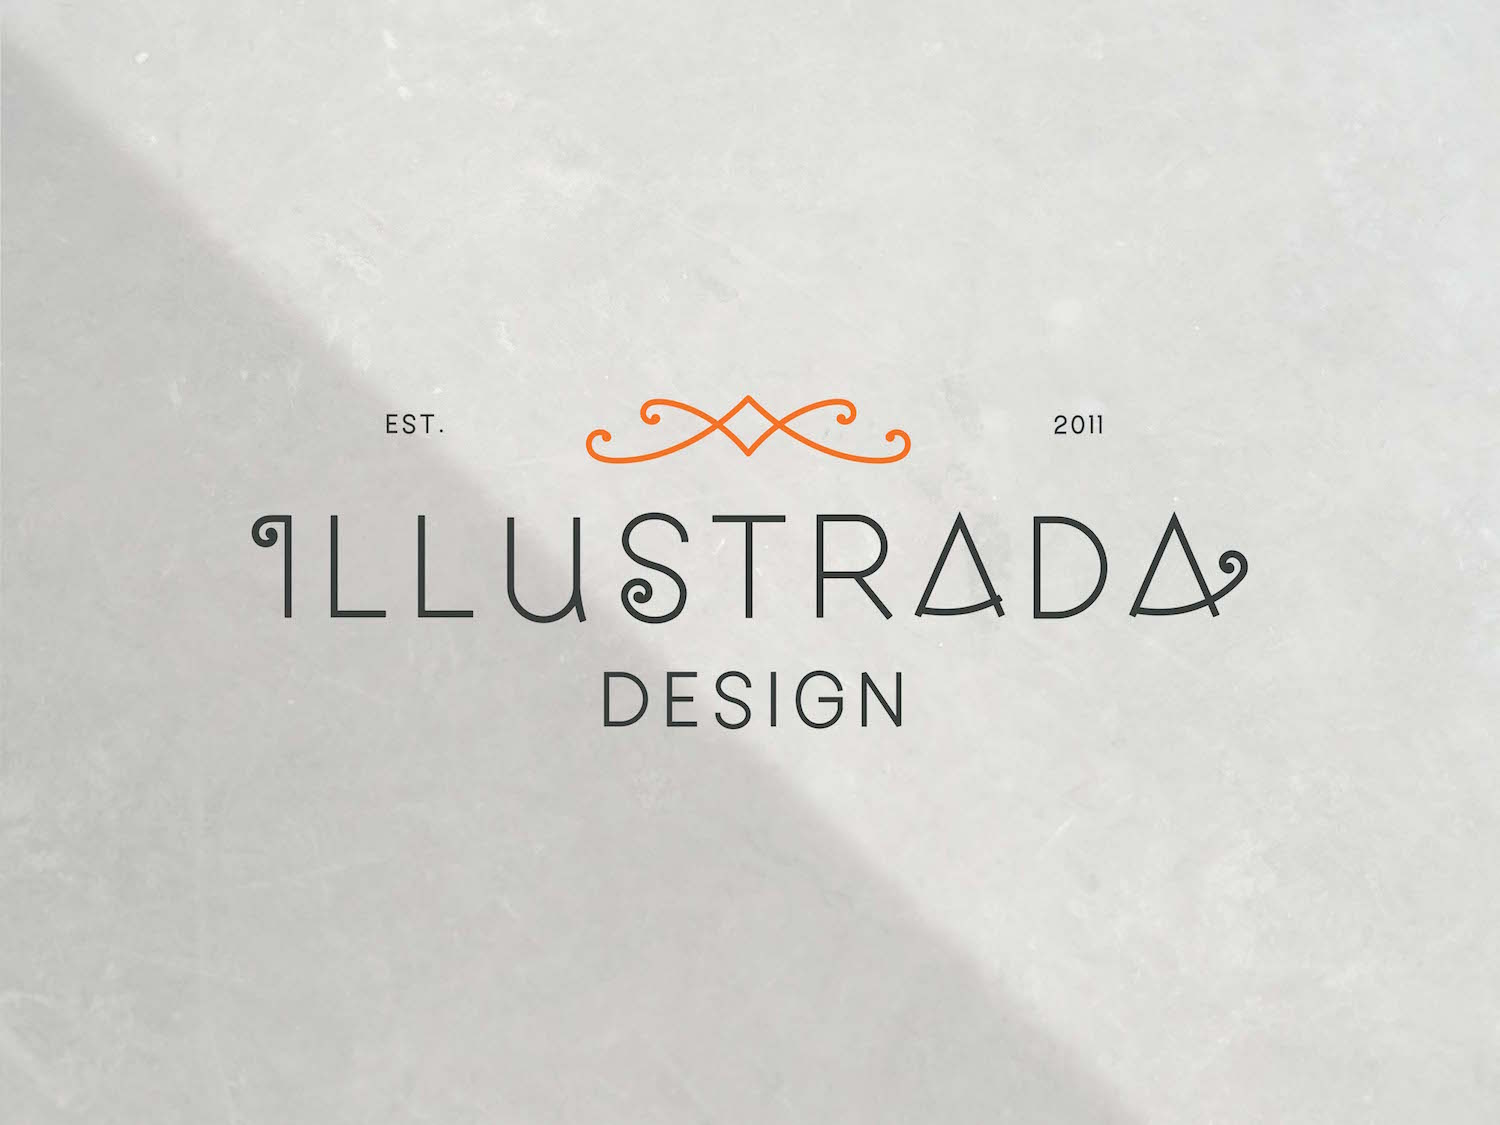 Illustrada Design Style Guide and Brand Reveal | Witt and Company